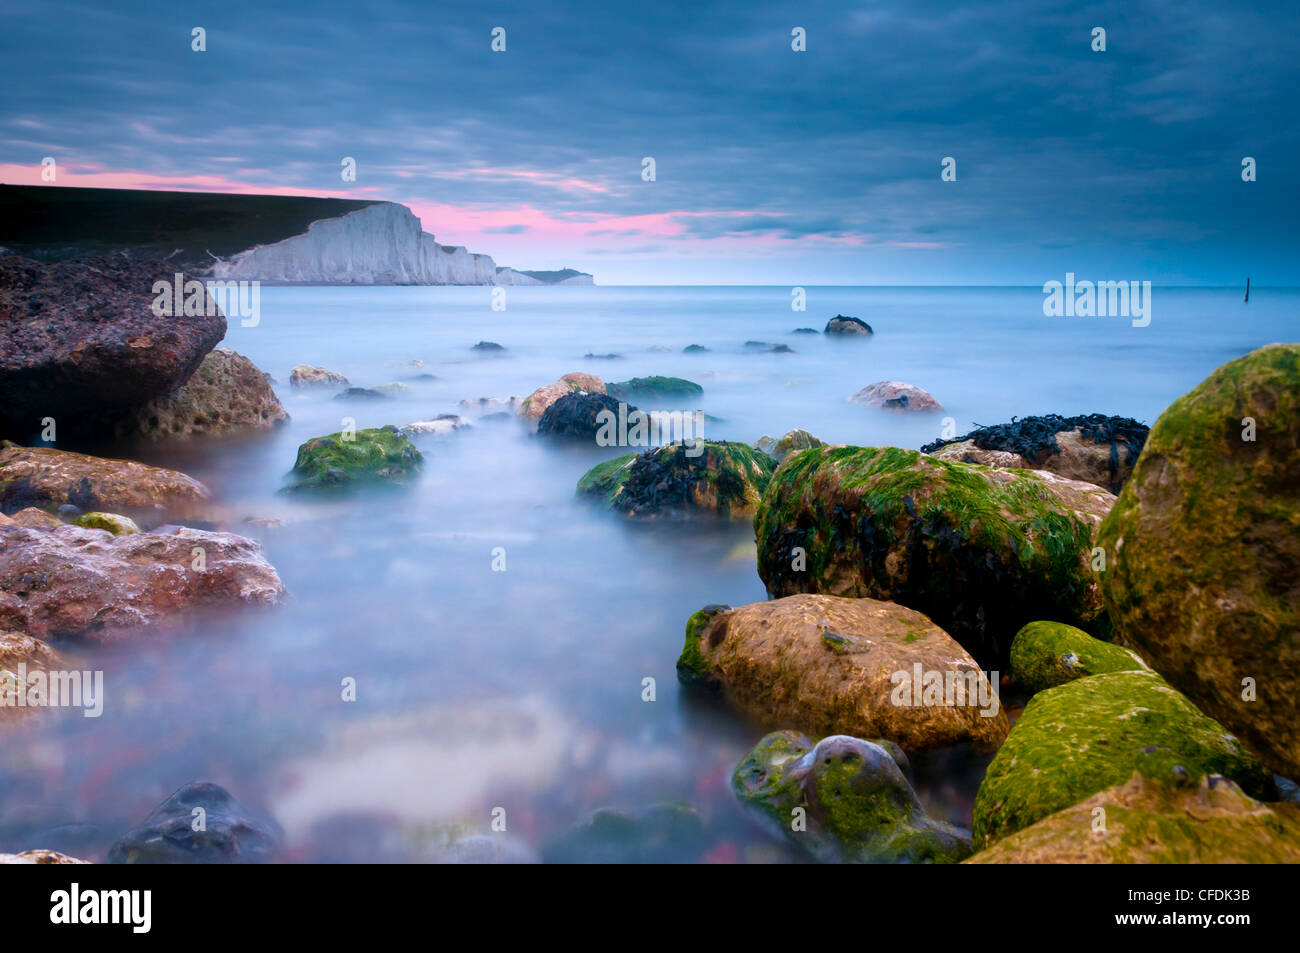 Seven Sisters Cliffs from Cuckmere Haven Beach, South Downs, East Sussex, England, United Kingdom, Europe - Stock Image